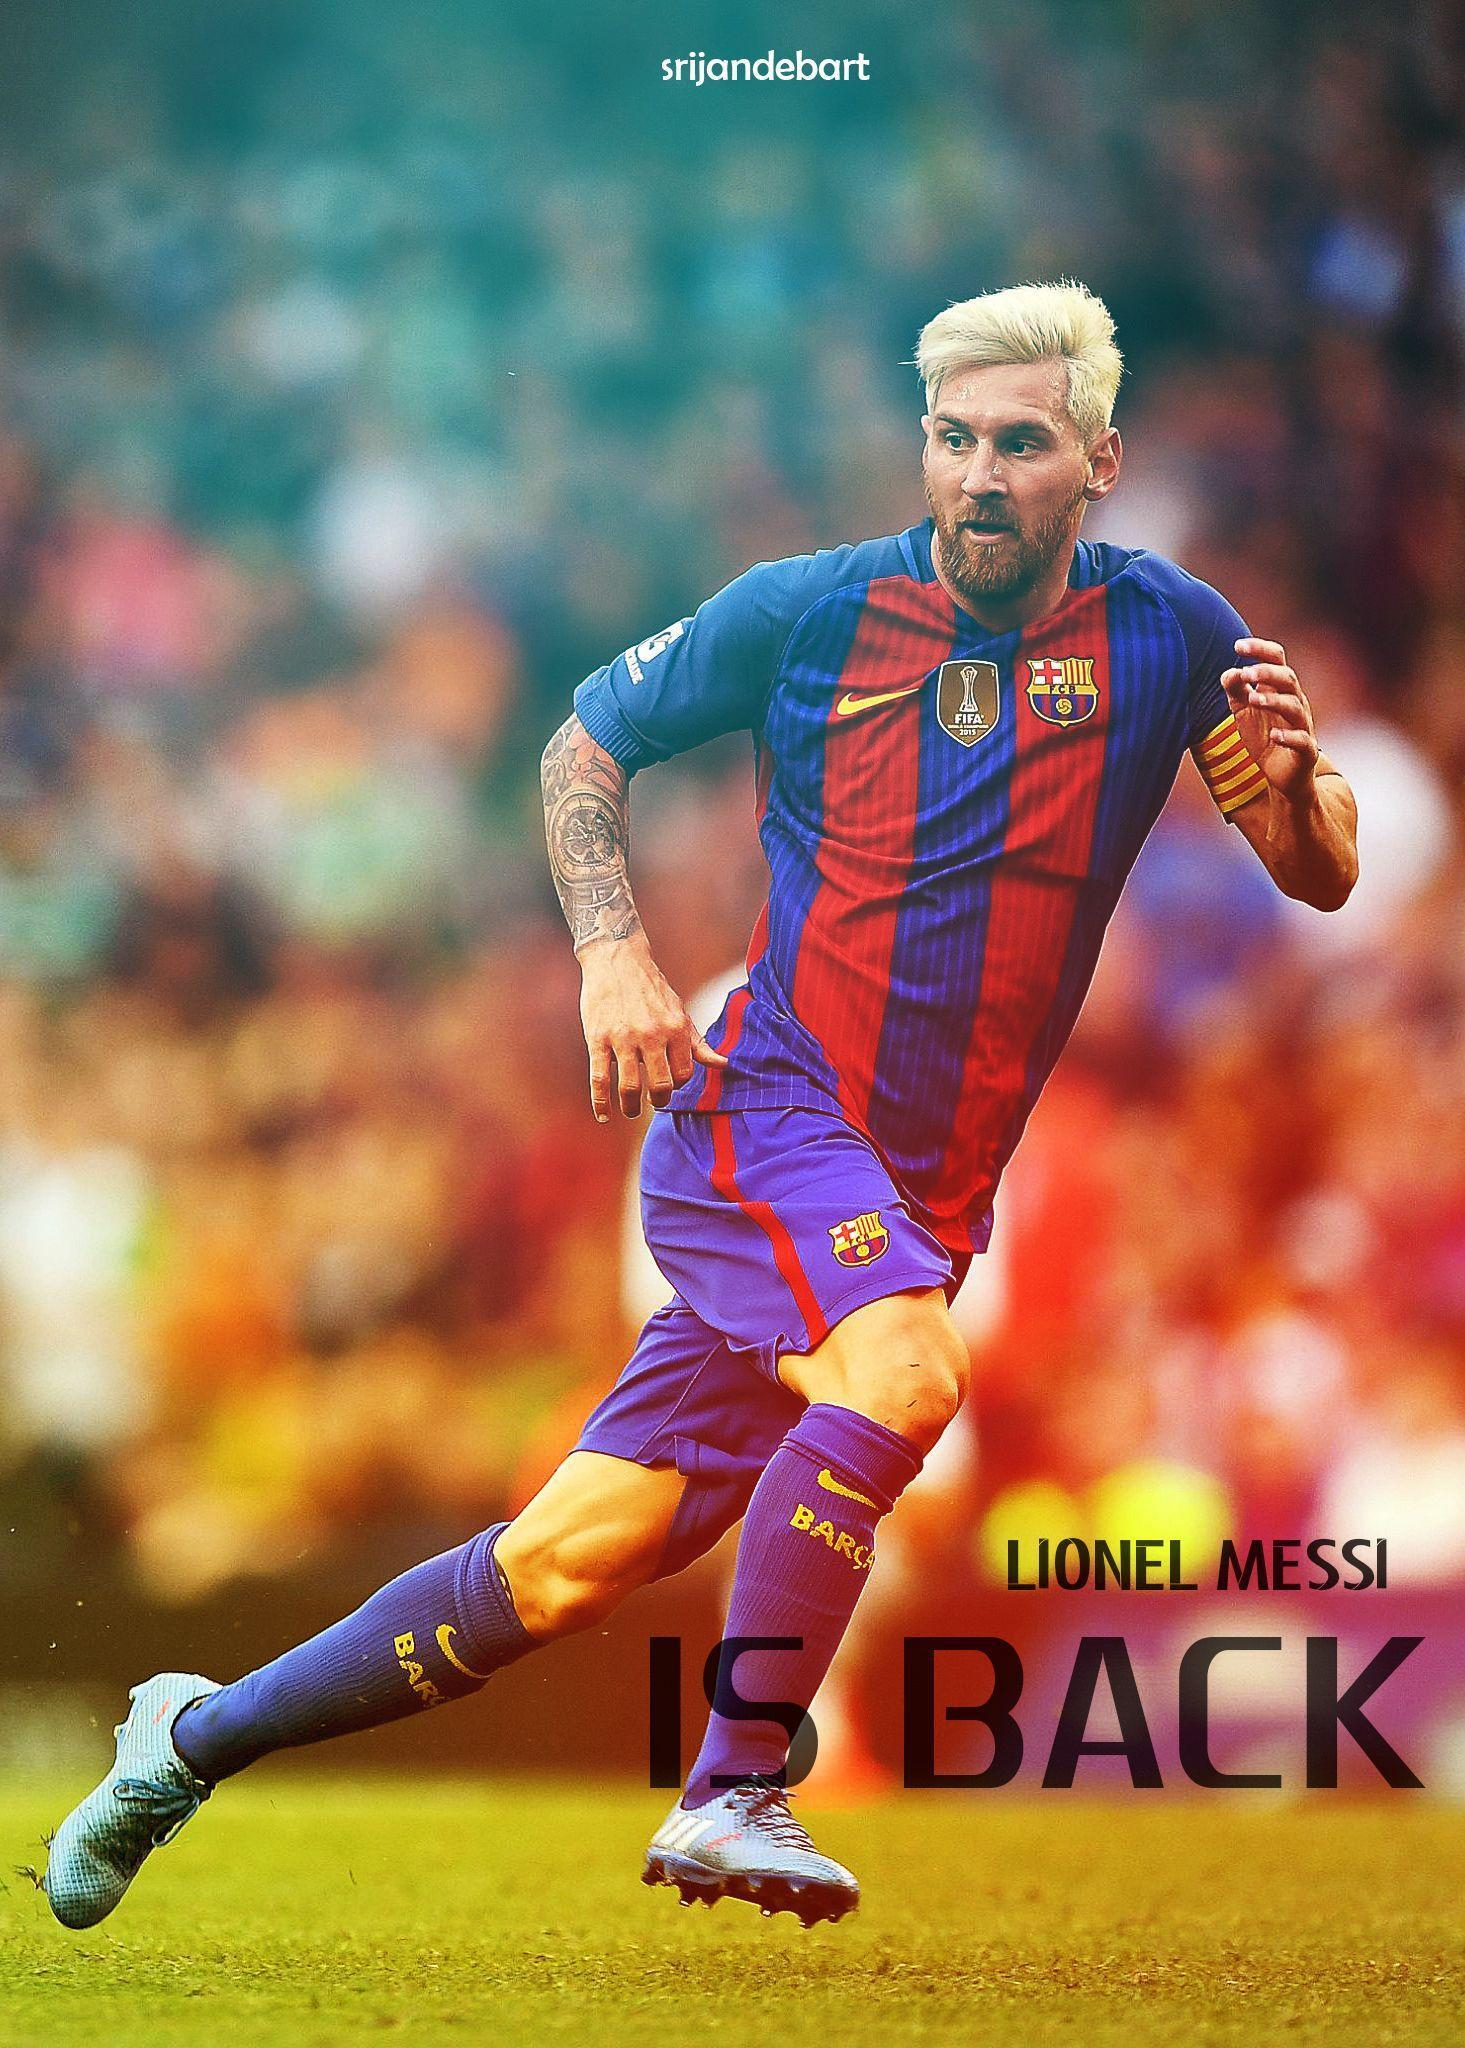 Leo Messi Blonde Mobile Wallpaper by srijandeb12 on DeviantArt